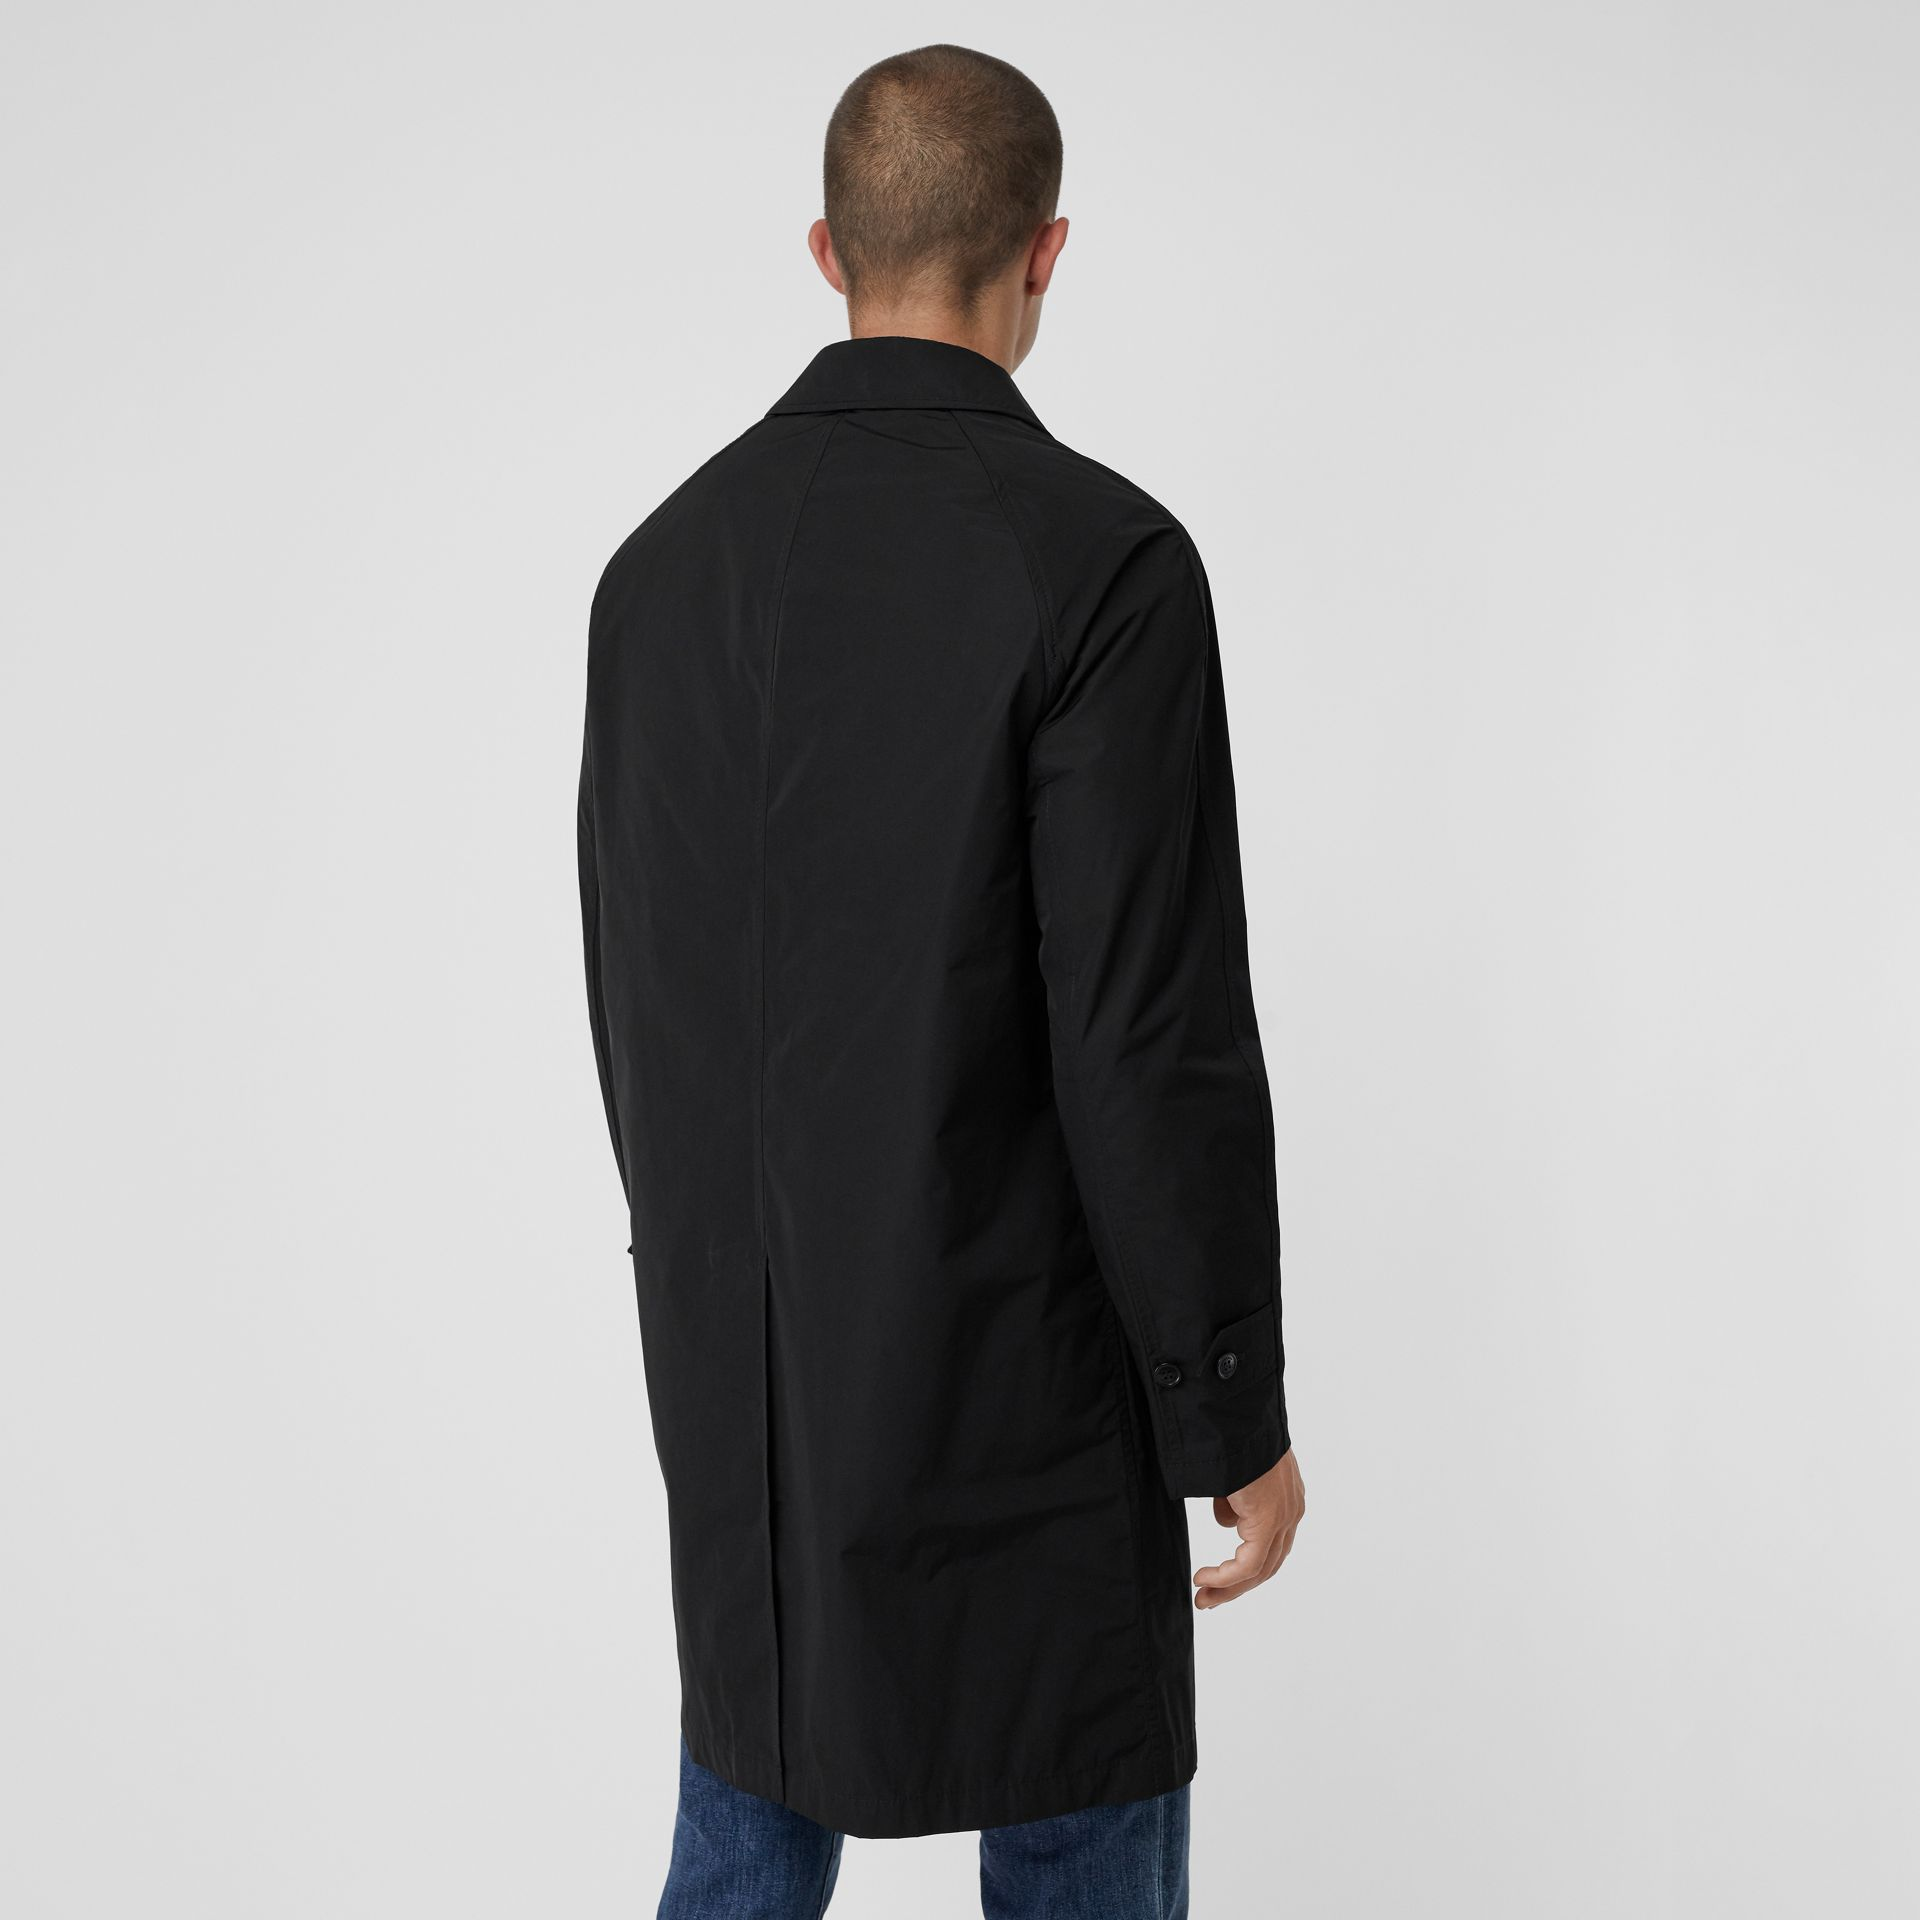 Shape-memory Taffeta Car Coat in Black - Men | Burberry - gallery image 2